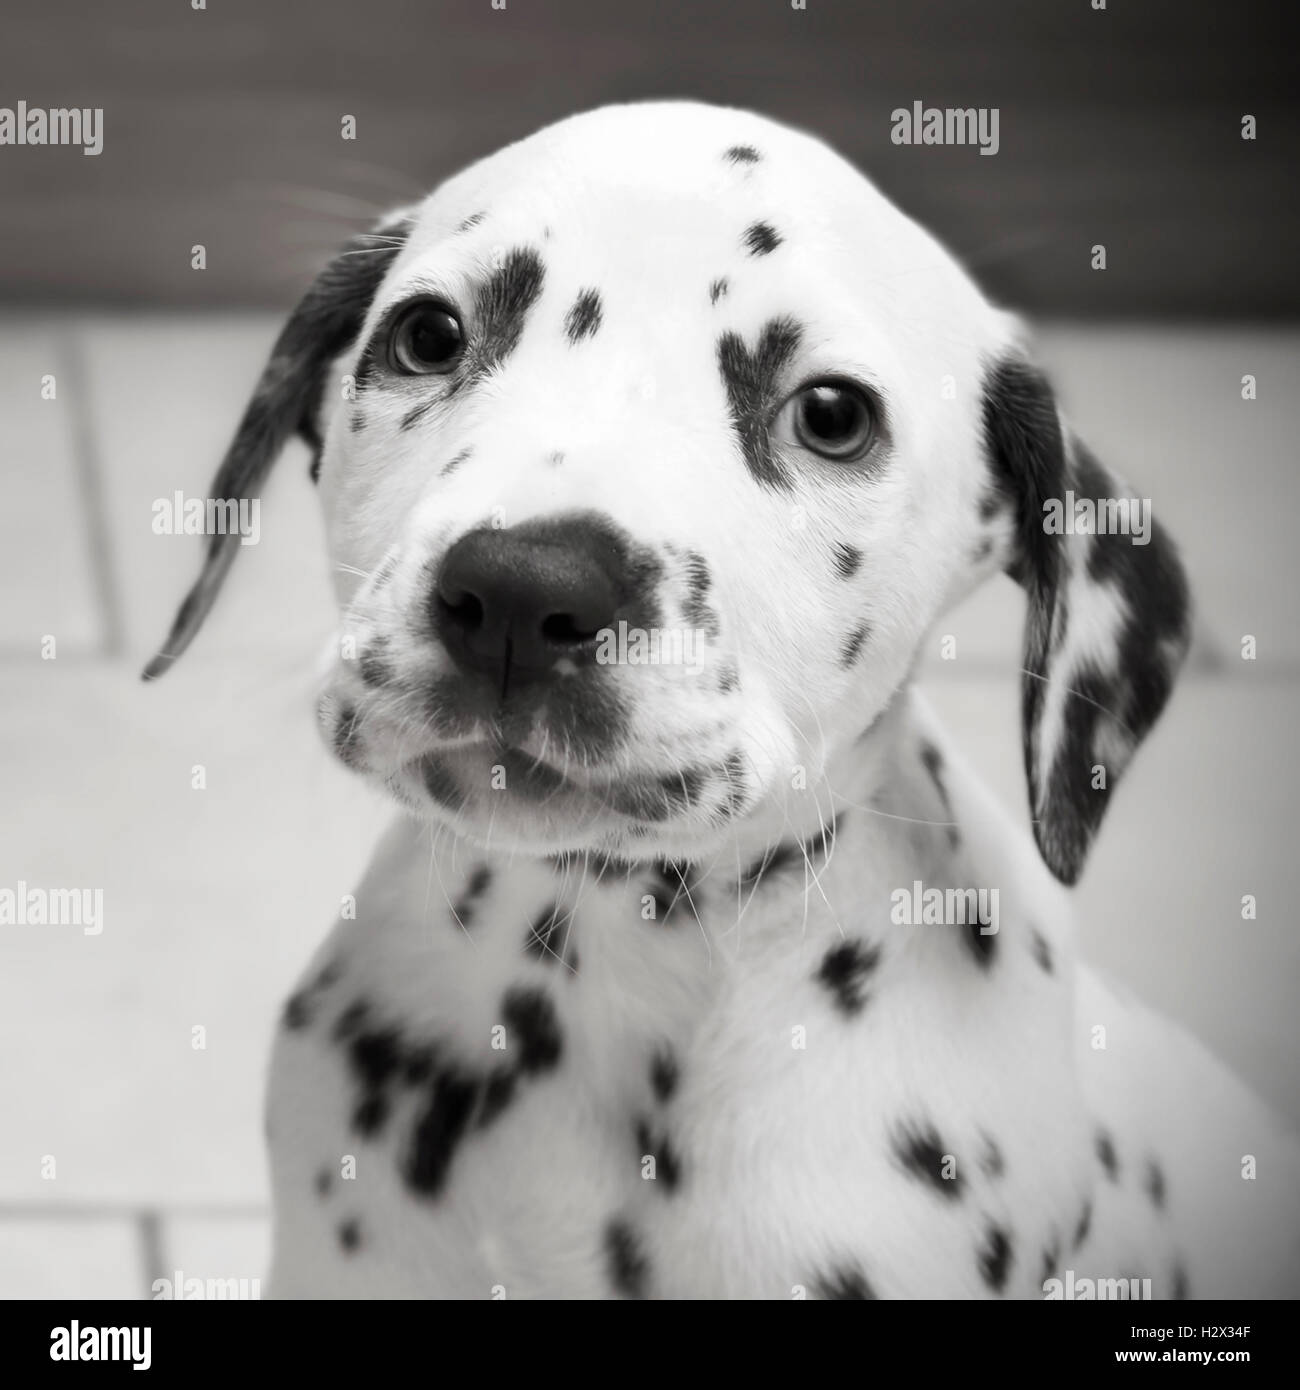 Cute Young 8 week Old Spotty Dalmatian Puppy - Staring into the camera with Puppy Eyes in Black and White - Stock Image